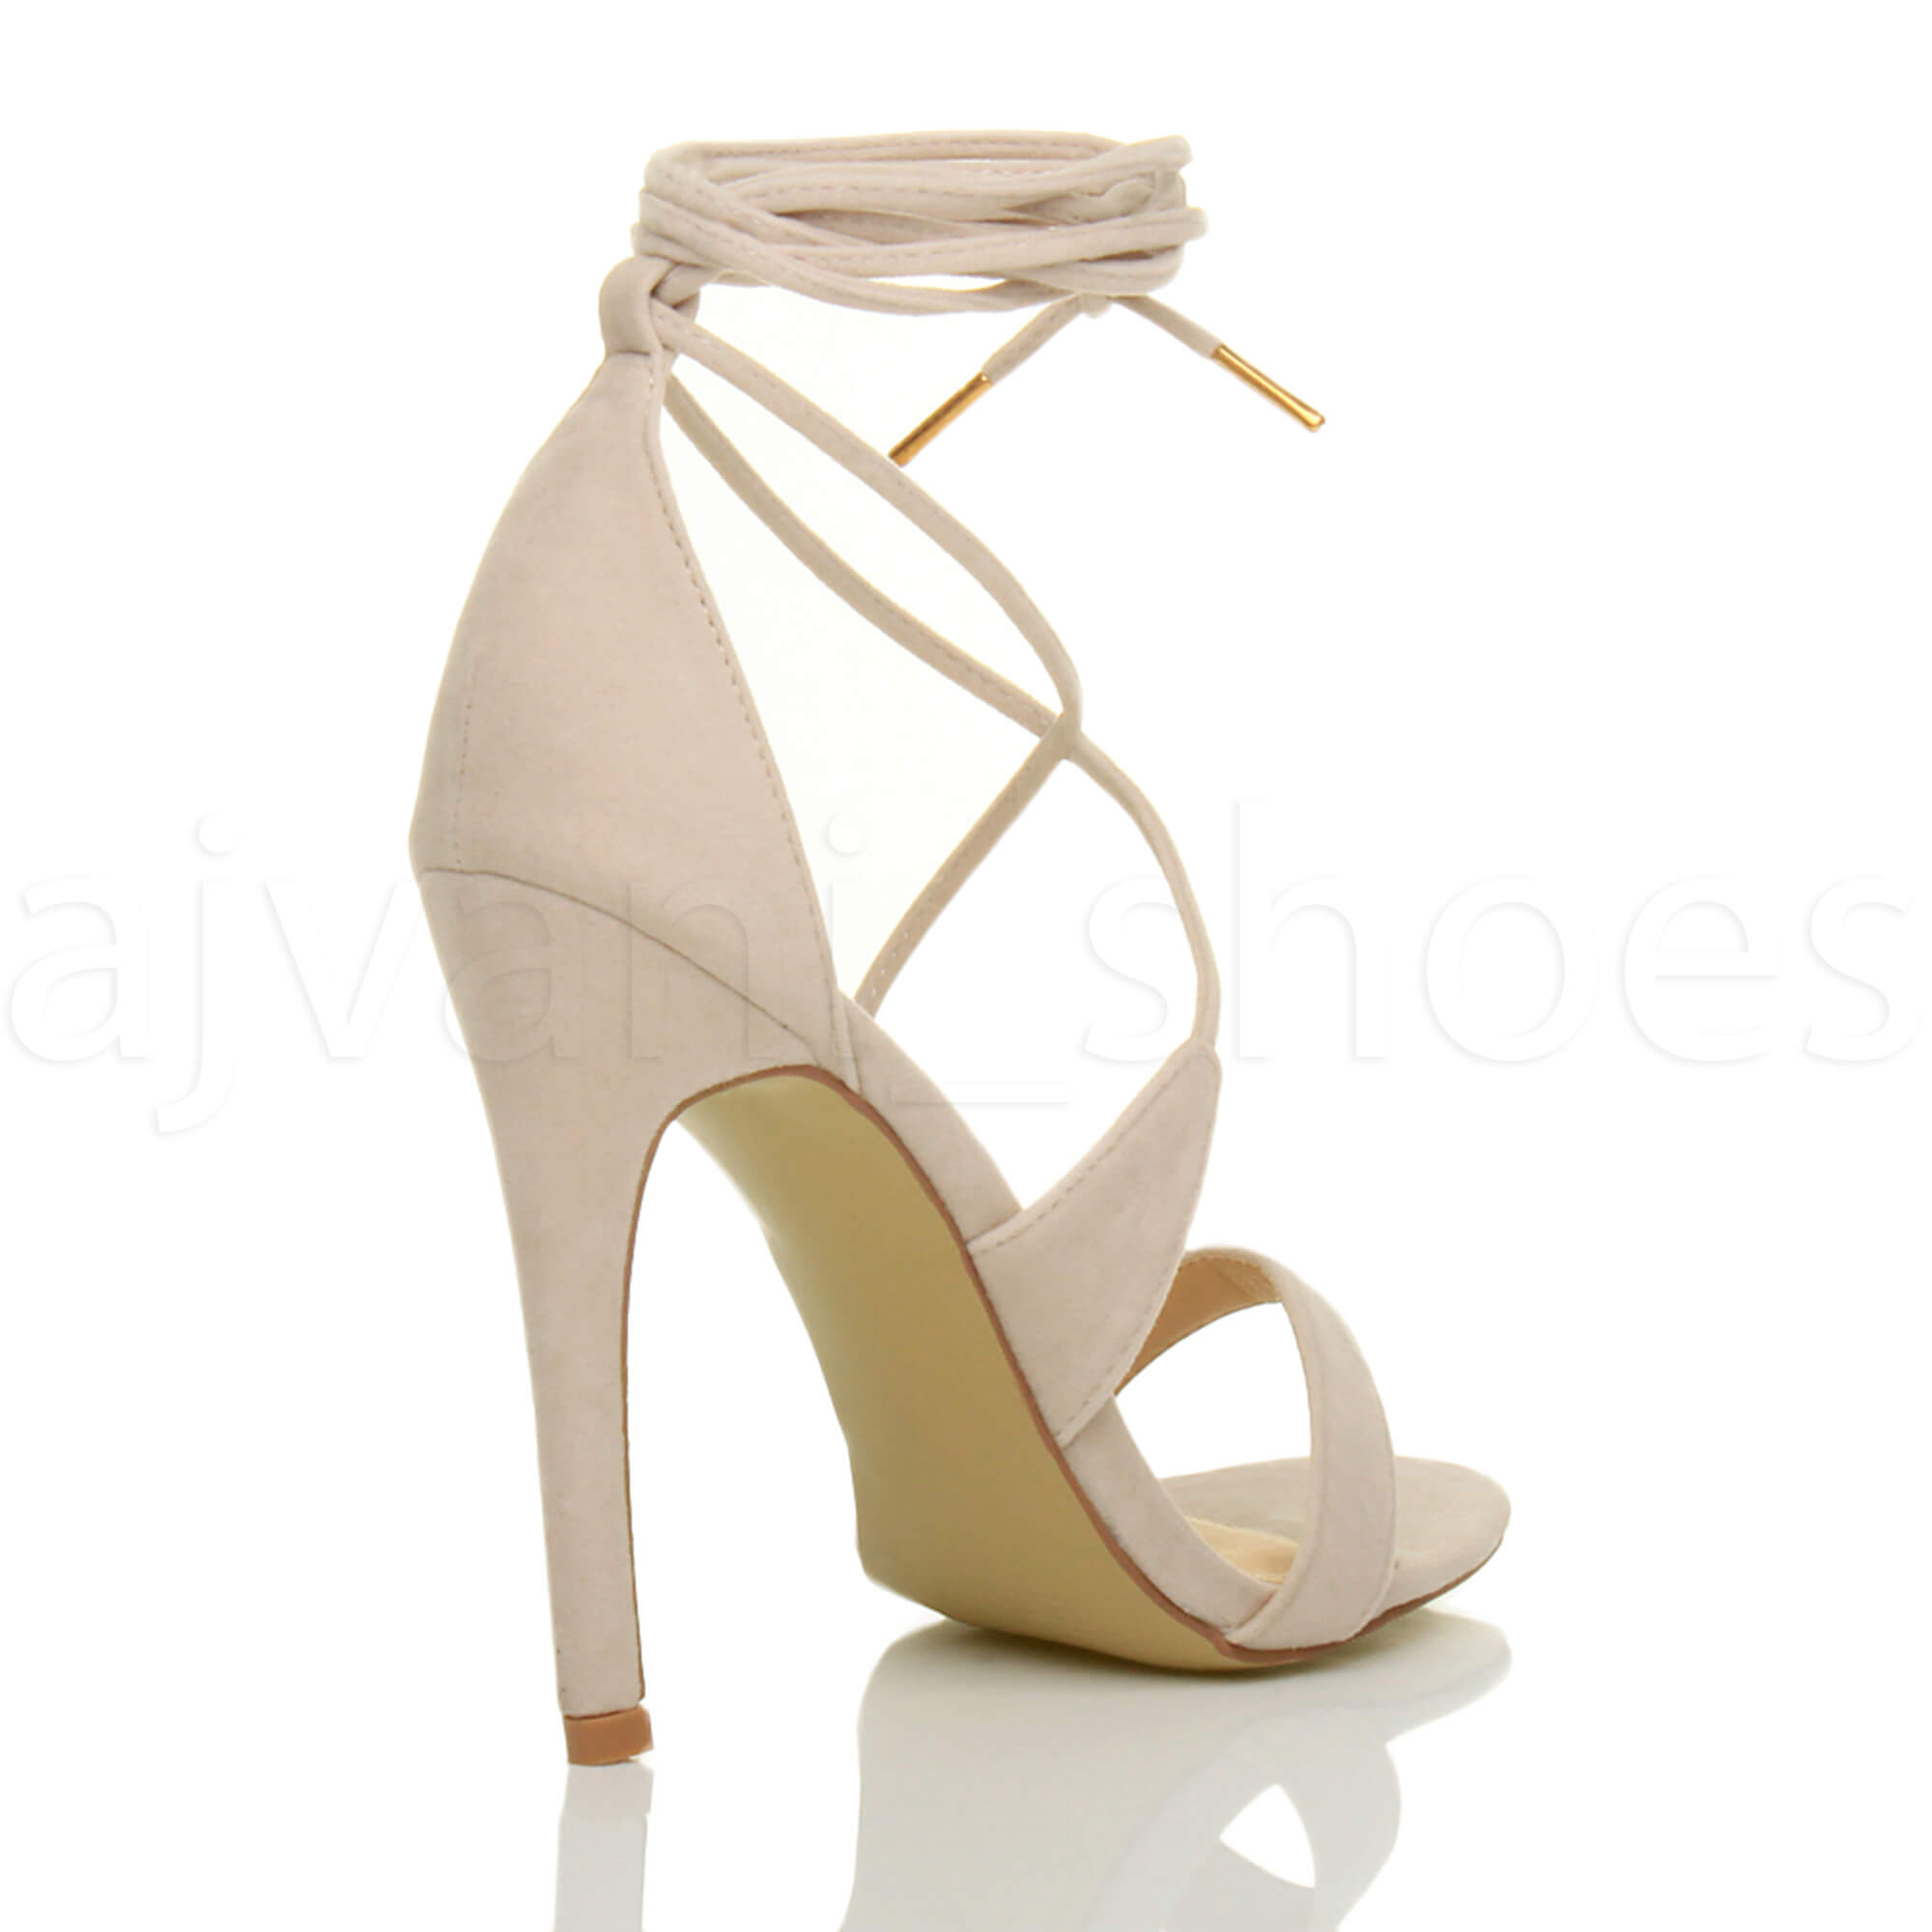 WOMENS-LADIES-HIGH-HEEL-BARELY-THERE-STRAPPY-LACE-TIE-UP-SANDALS-SHOES-SIZE thumbnail 41